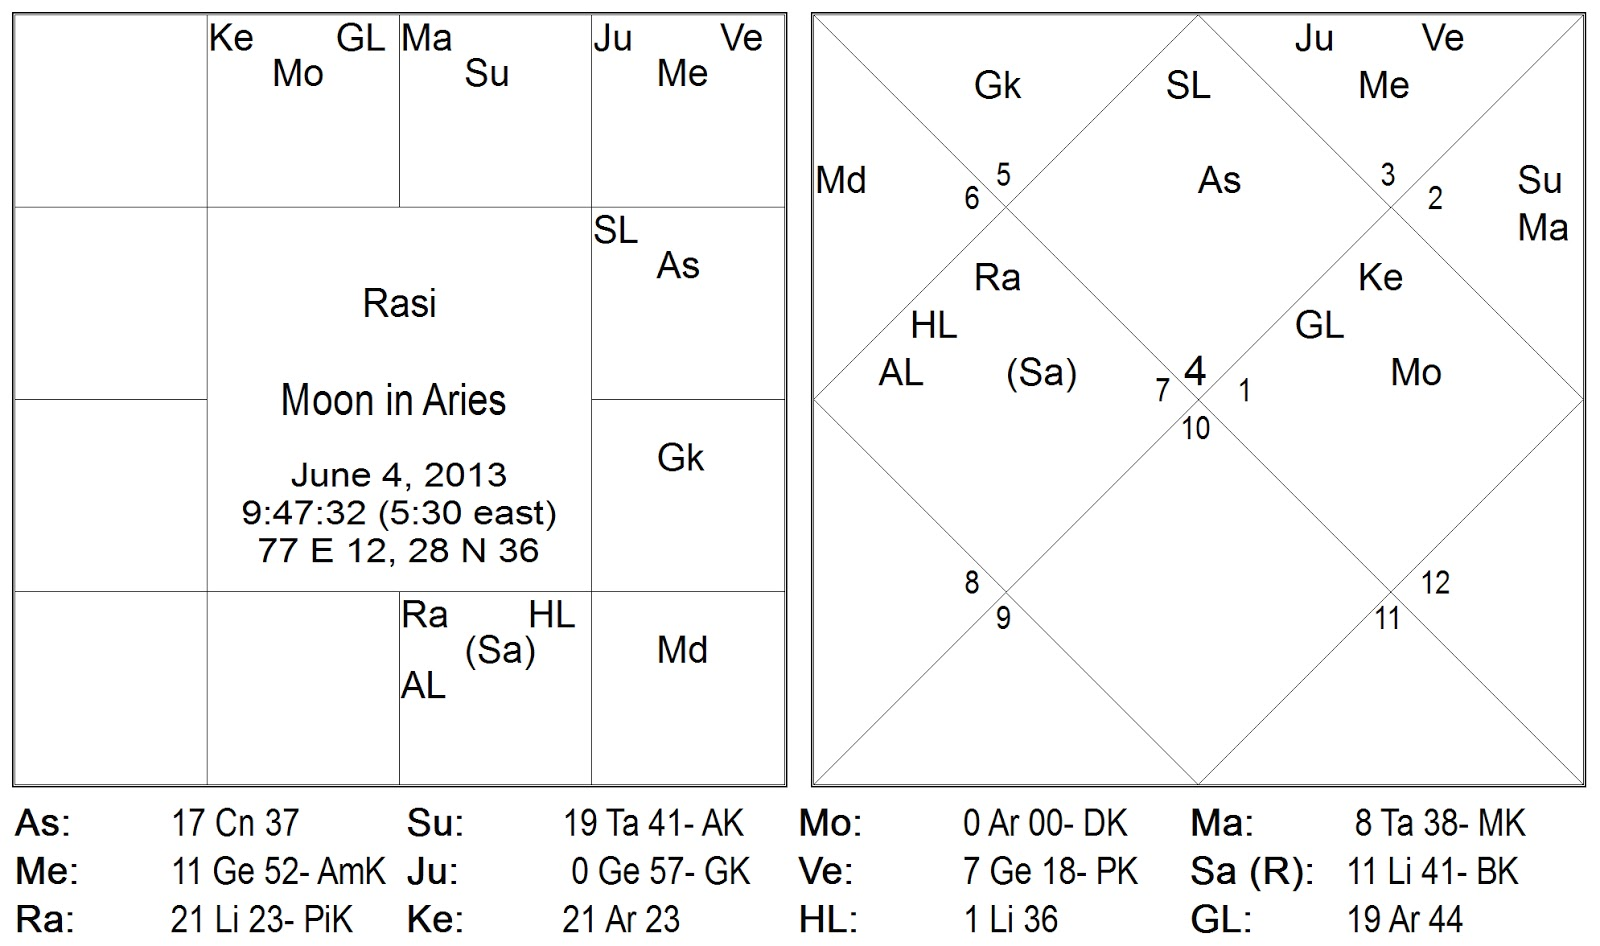 The transit gochara vedic chart for the entry of the moon into aries me a mesha on 4th june 2013 is given below